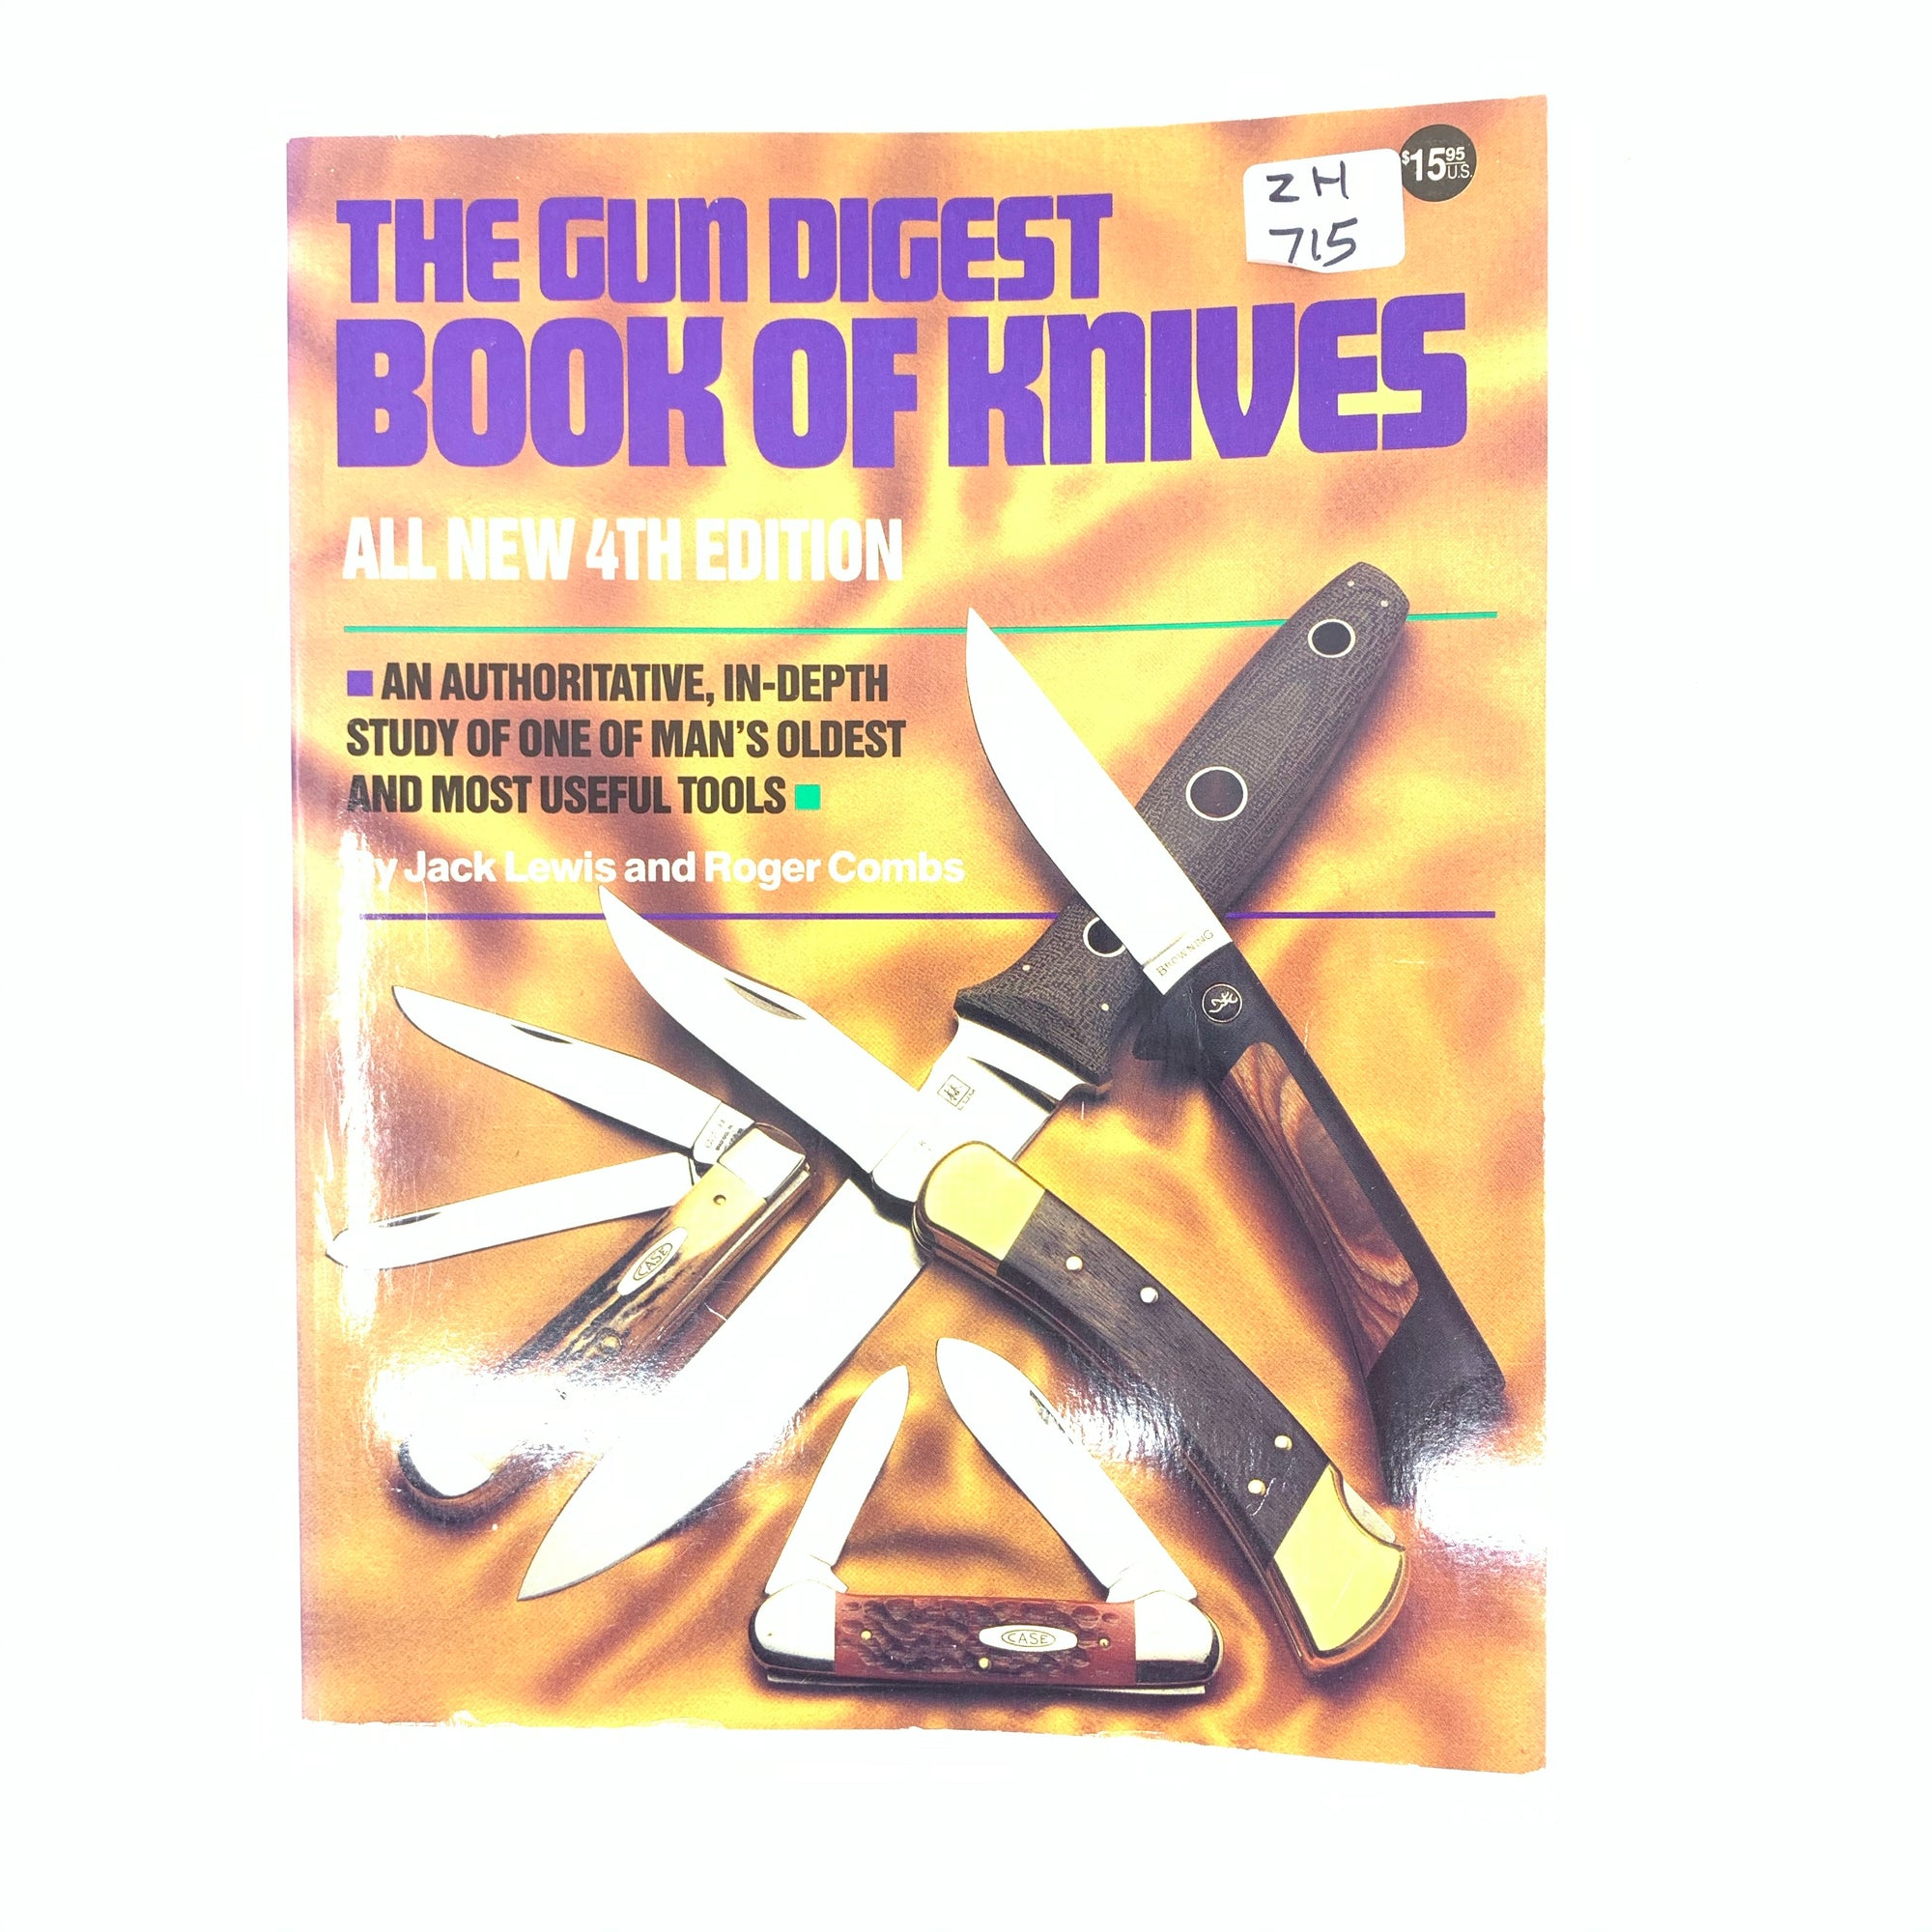 The Gun Digest Book of Knives Lewis & Combs SB 243 pgs